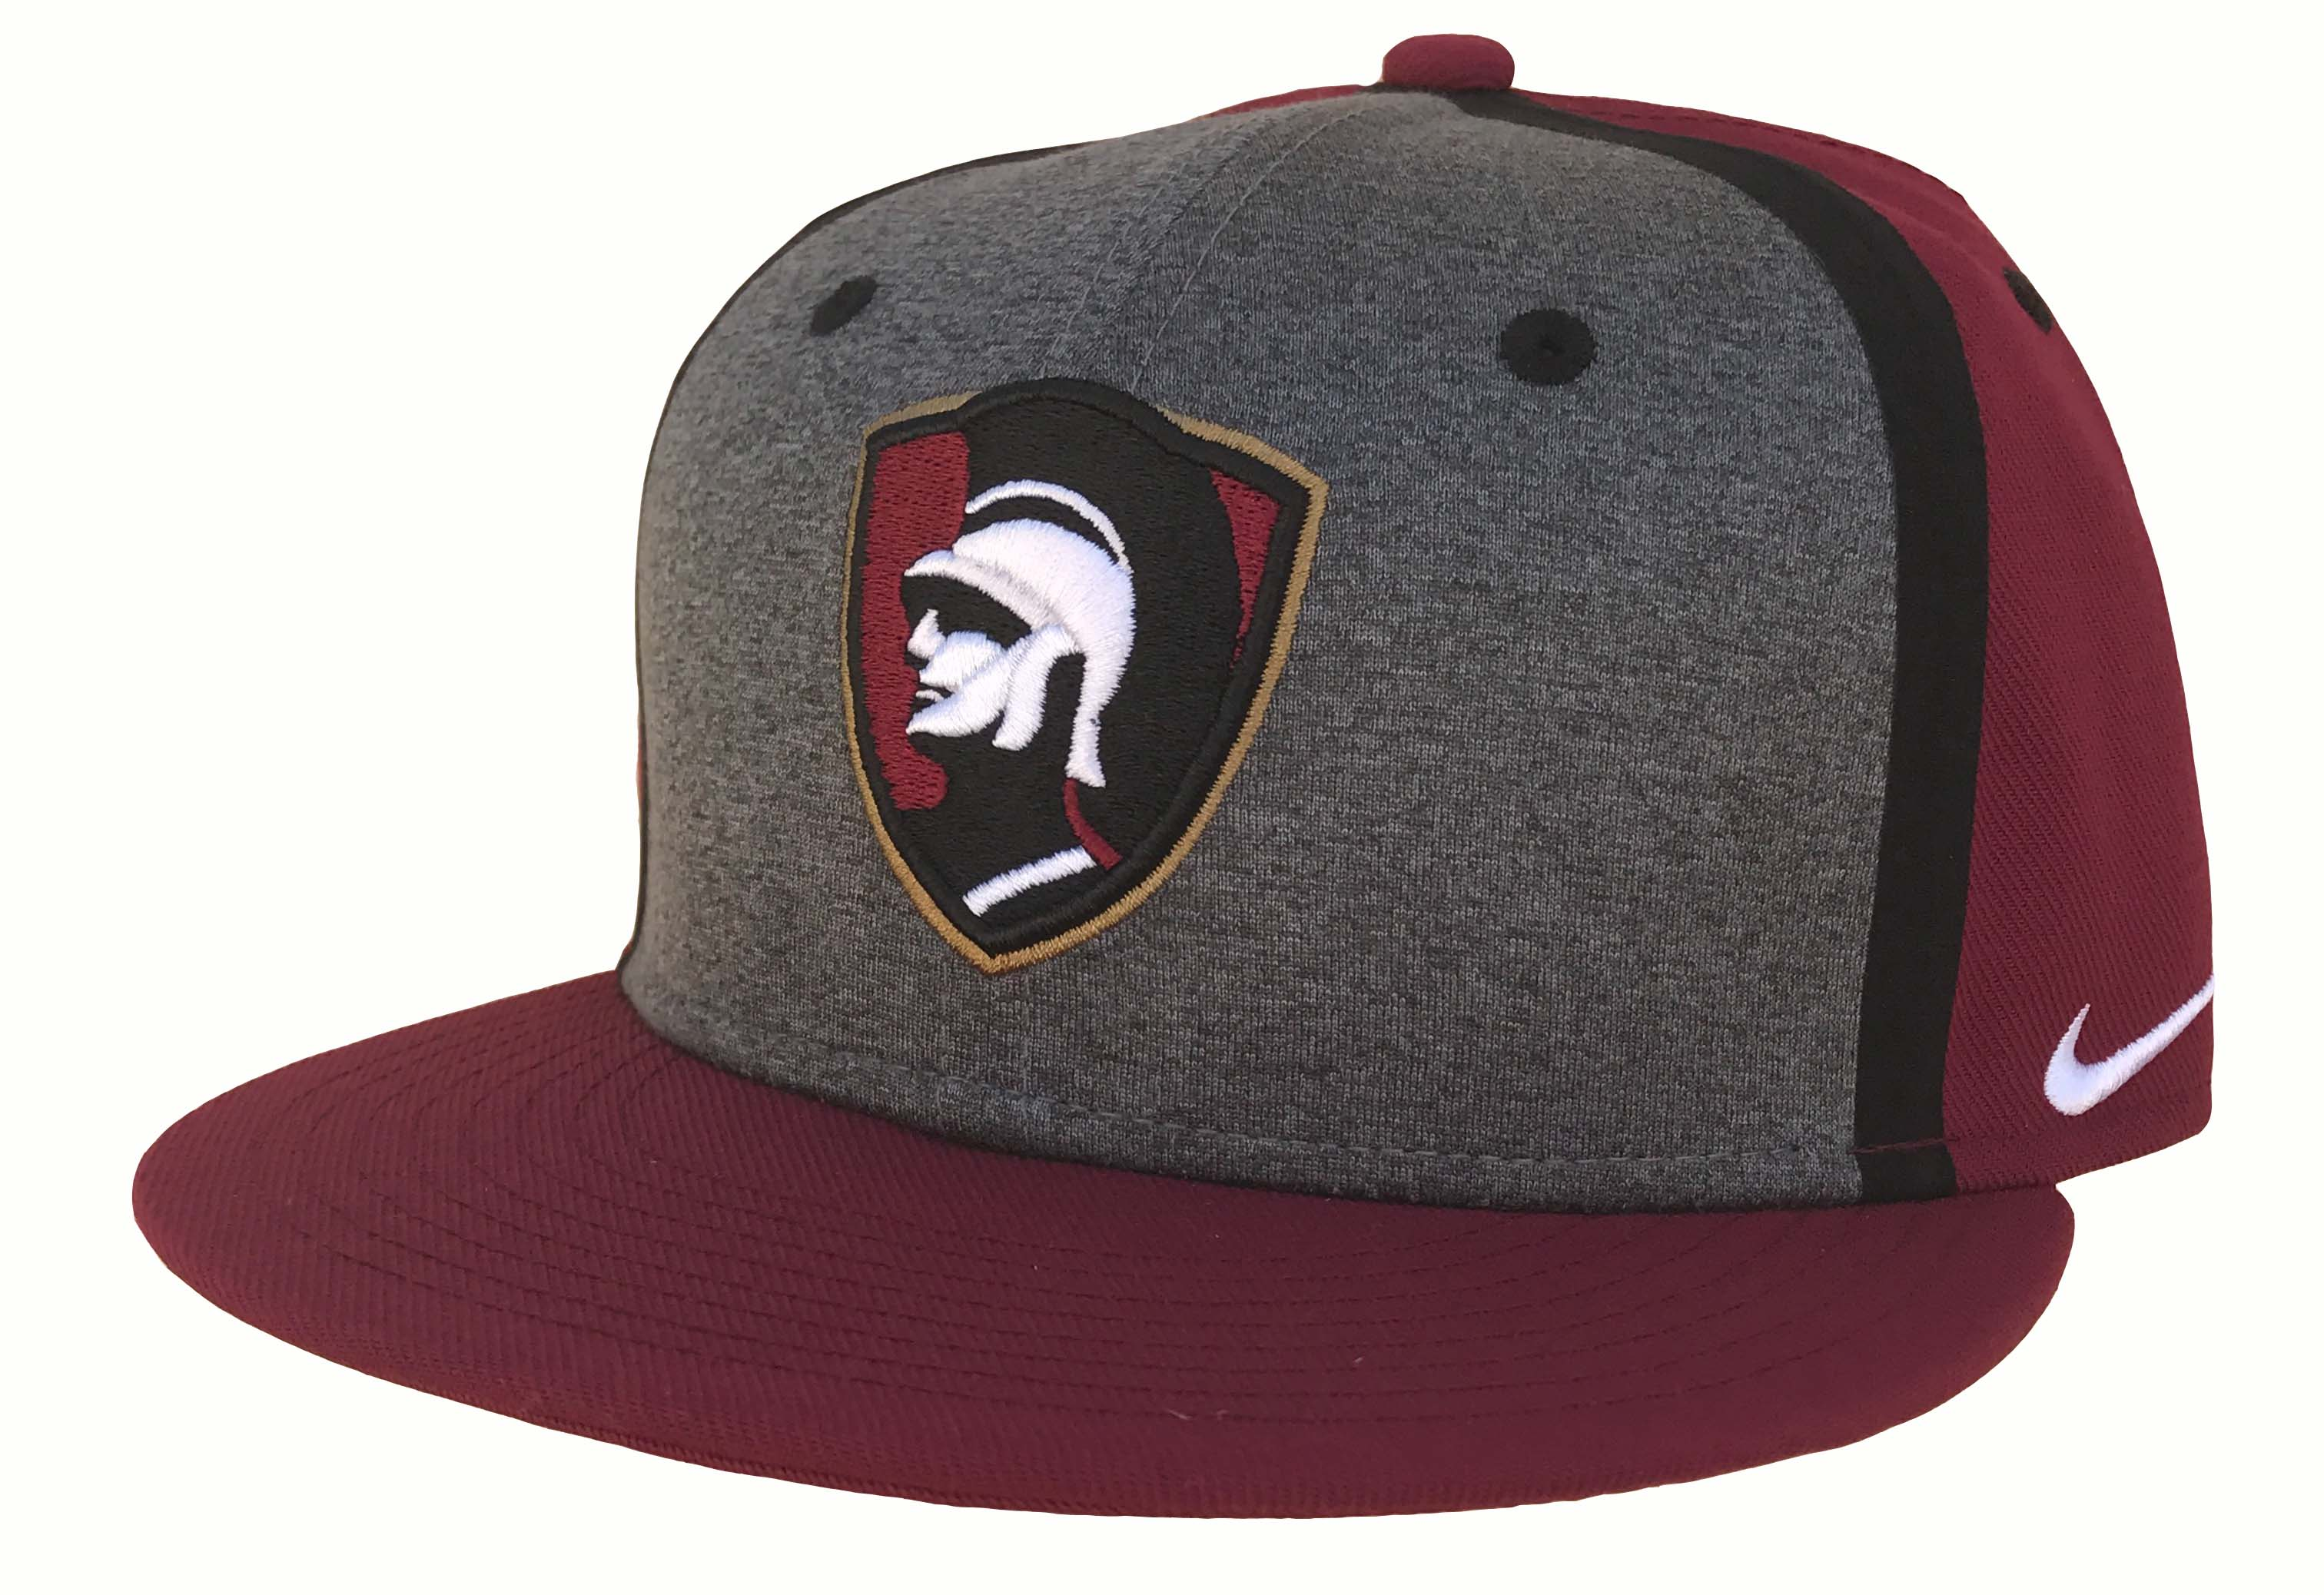 Image for the True Sideline Player's Hat product